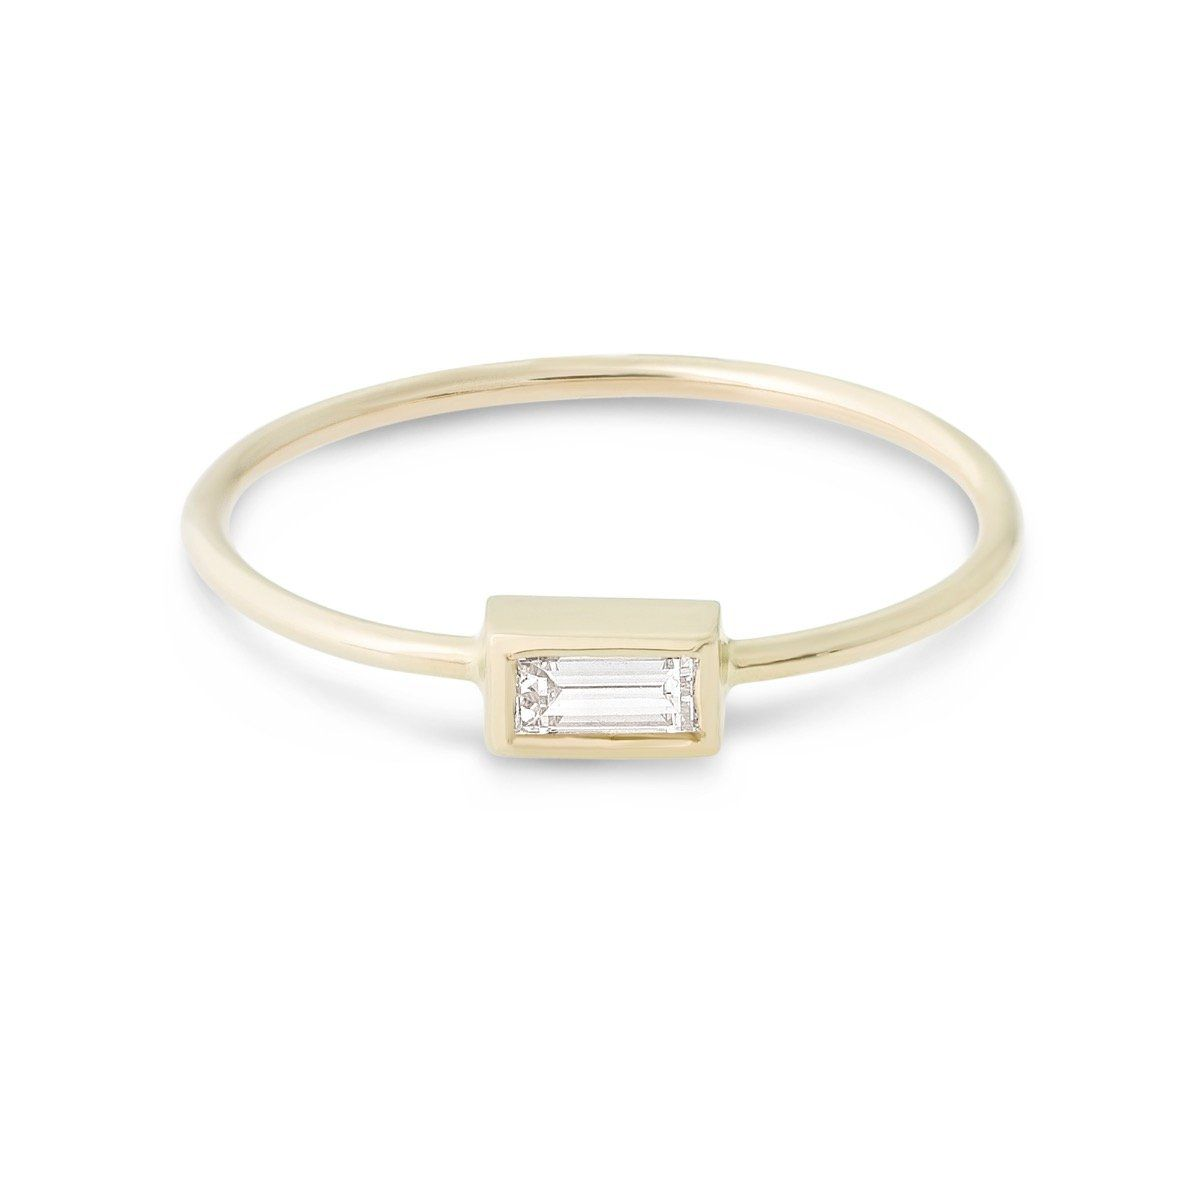 c4924d3f128 Small Baguette Diamond Ring - STONE AND STRAND